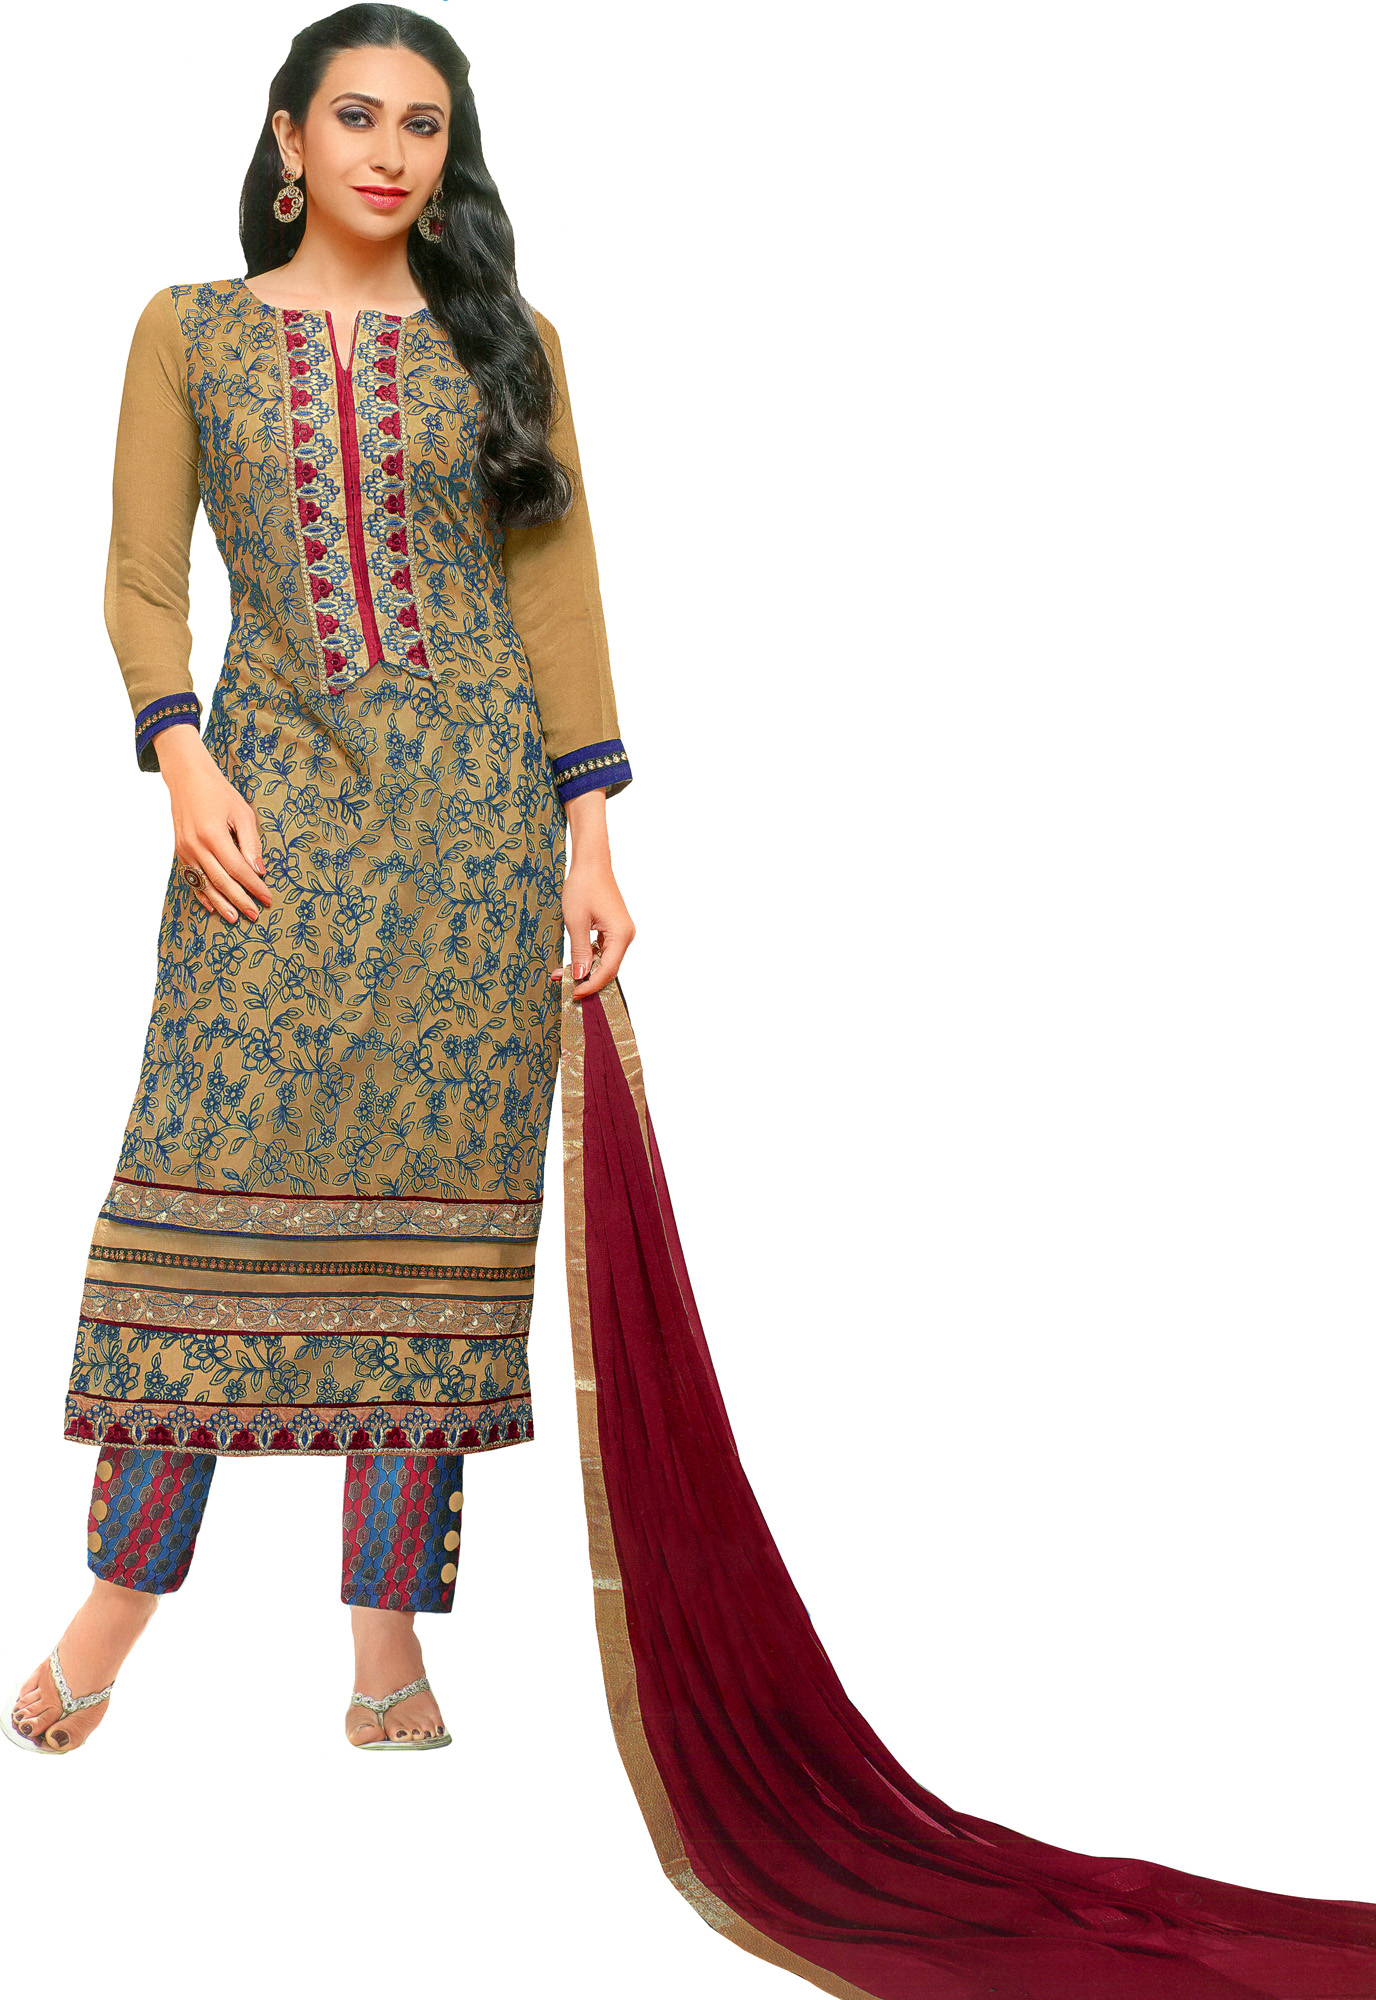 Beige and maroon parallel salwar suit with ari embroidery